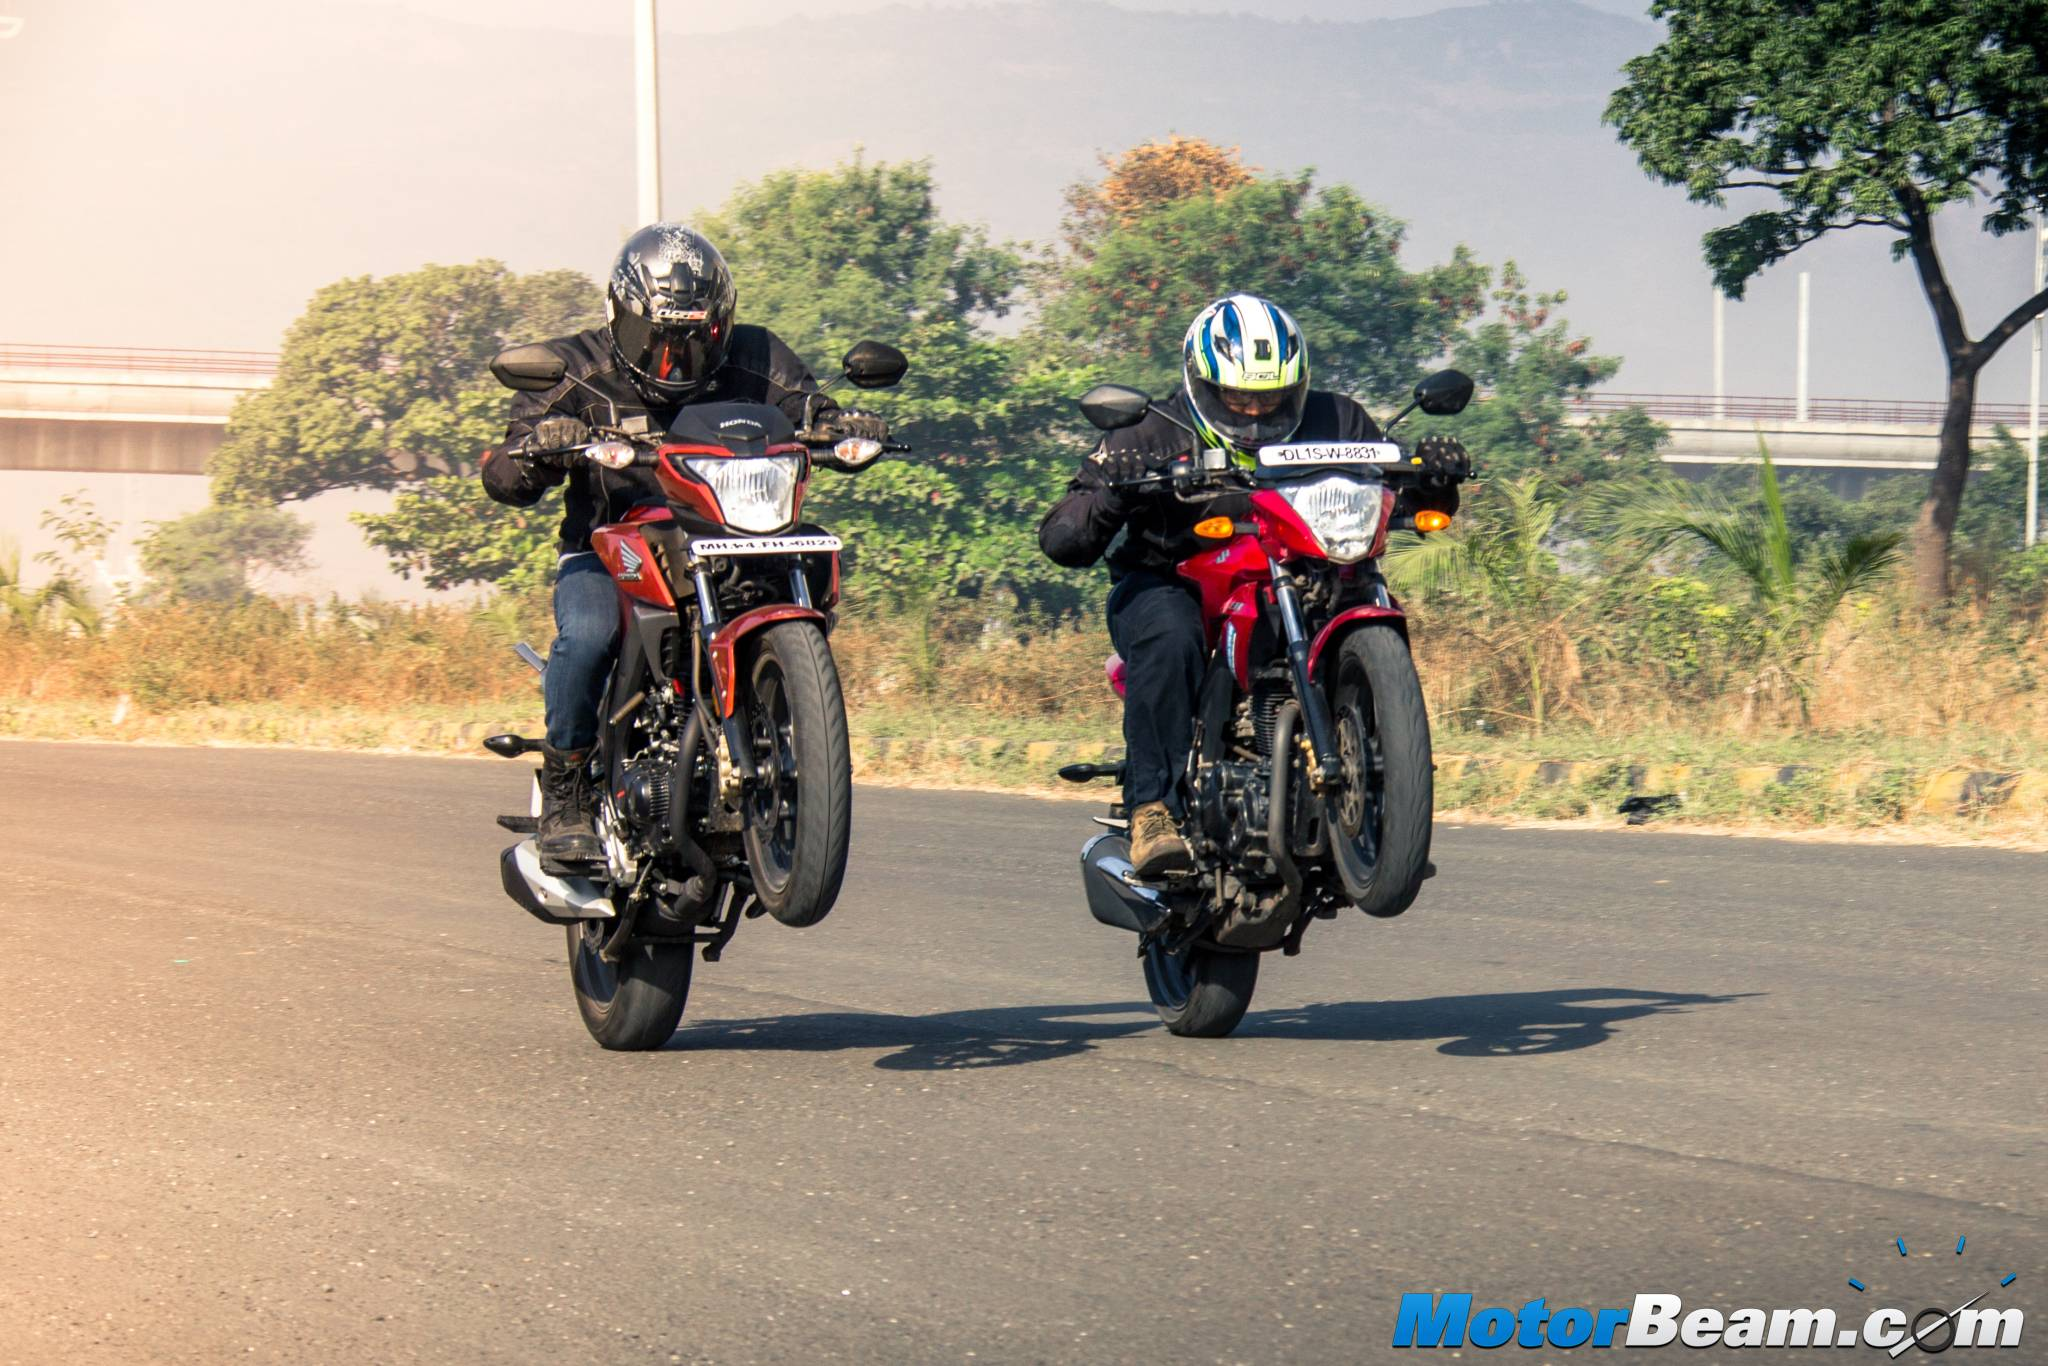 Top 5 150cc 160cc motorcycles in the country indian cars bikes - Euro 4 Norms On Bikes Will Reduce Mileage Say Automakers Motorbeam Indian Car Bike News Review Price